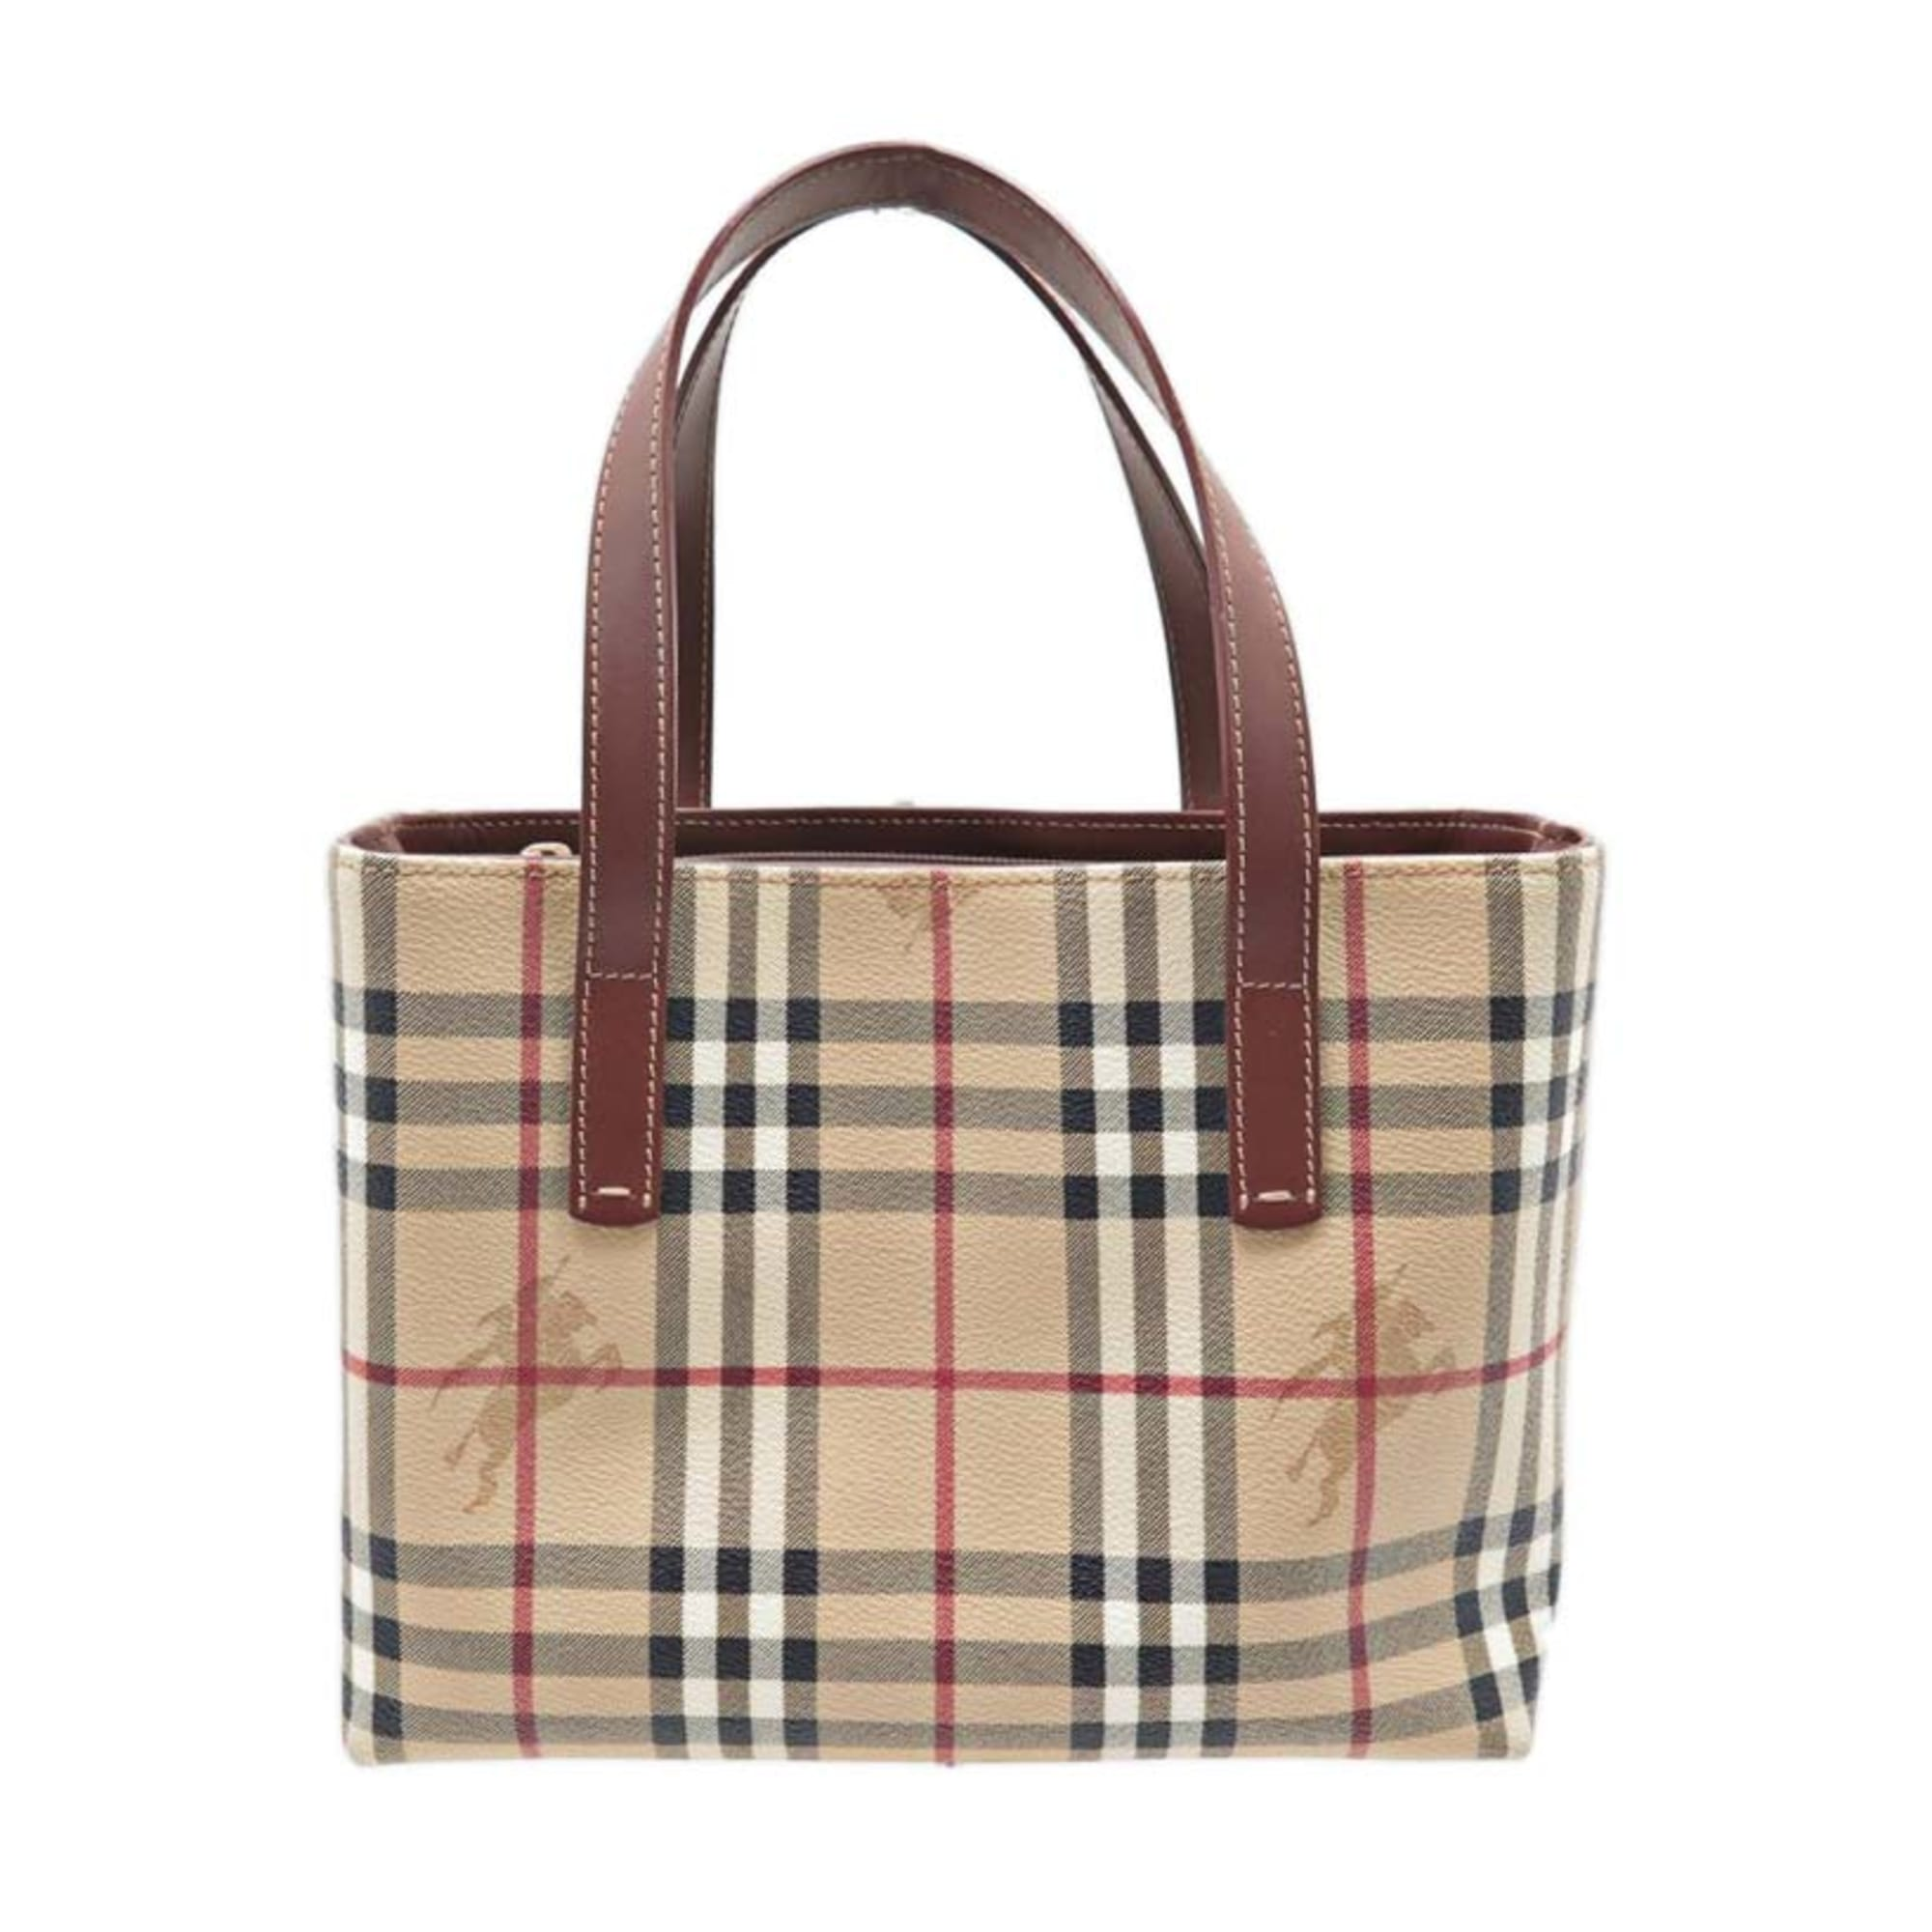 77158d7b57 Sac à main en cuir BURBERRY beige vendu par Encherexpert - paris14 ...